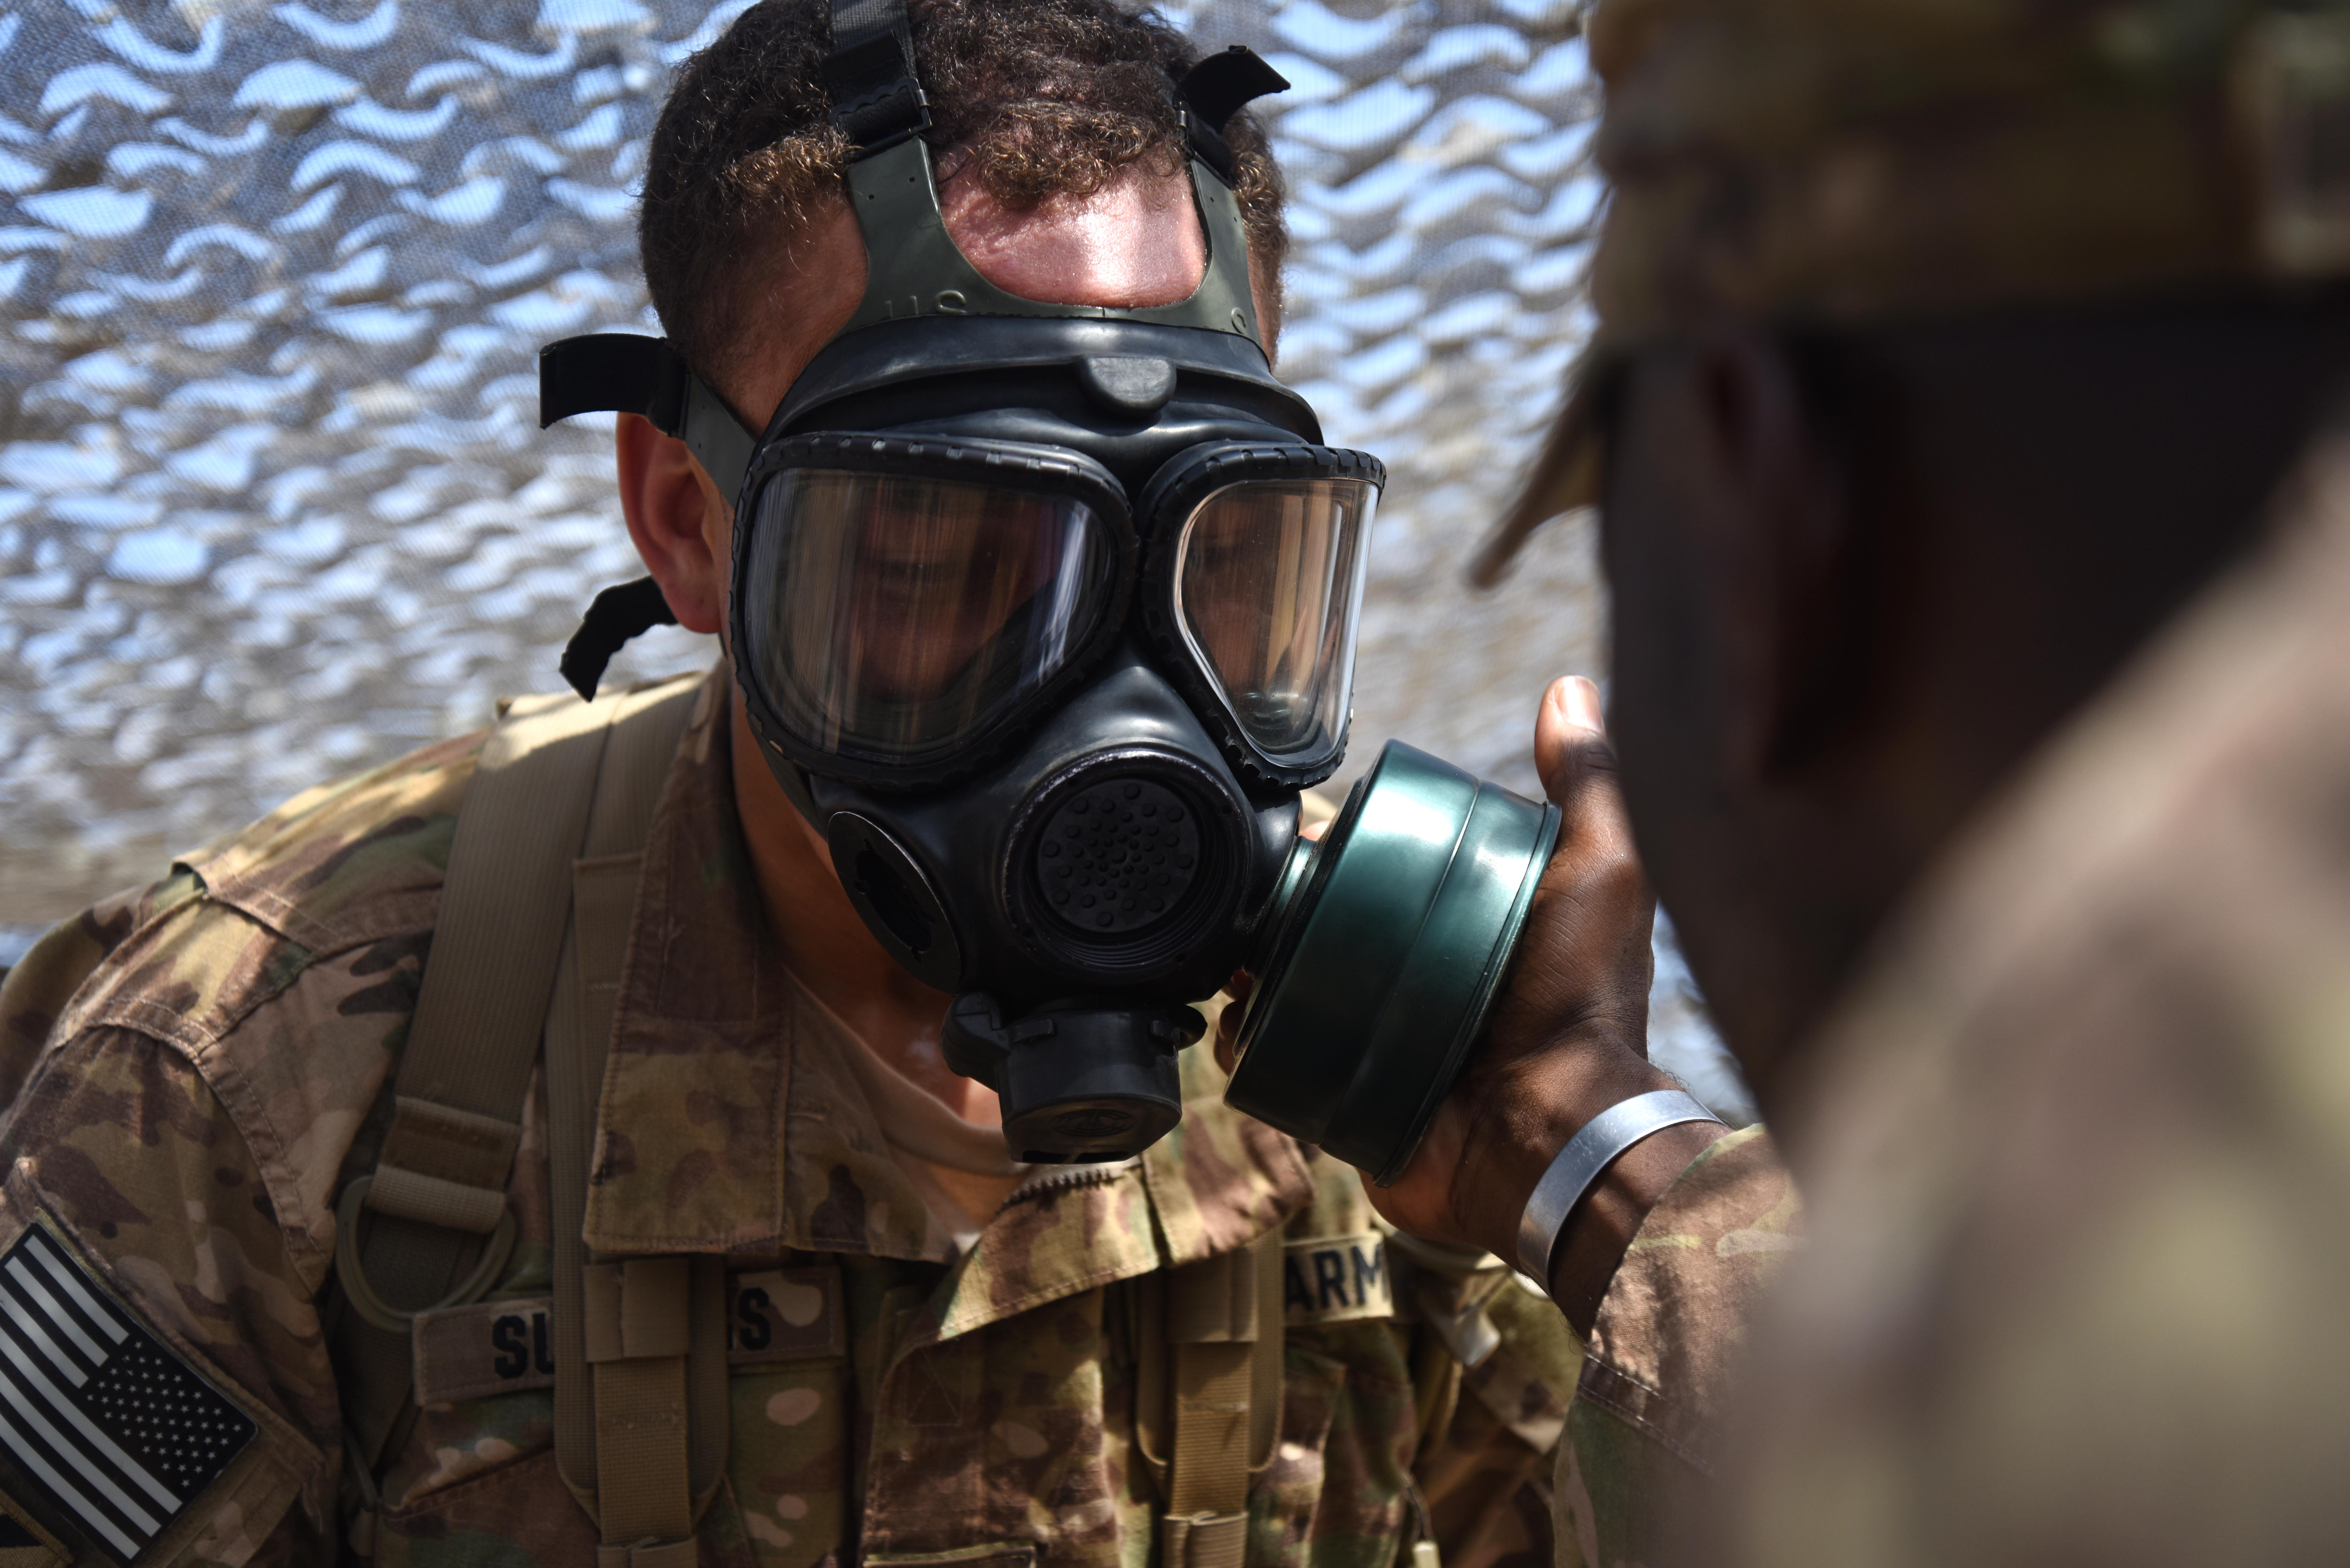 U.S. Army Expert Infantry Badge candidate completes a gas mask test March 31, 2016, during the patrolling portion of the EIB course at Camp Lemonnier, Djibouti. The patrolling day included the most diverse categories of the course such as face paint, radio calls, hand signals and gas mask drills. (U.S. Air Force photo by Staff Sgt. Kate Thornton)